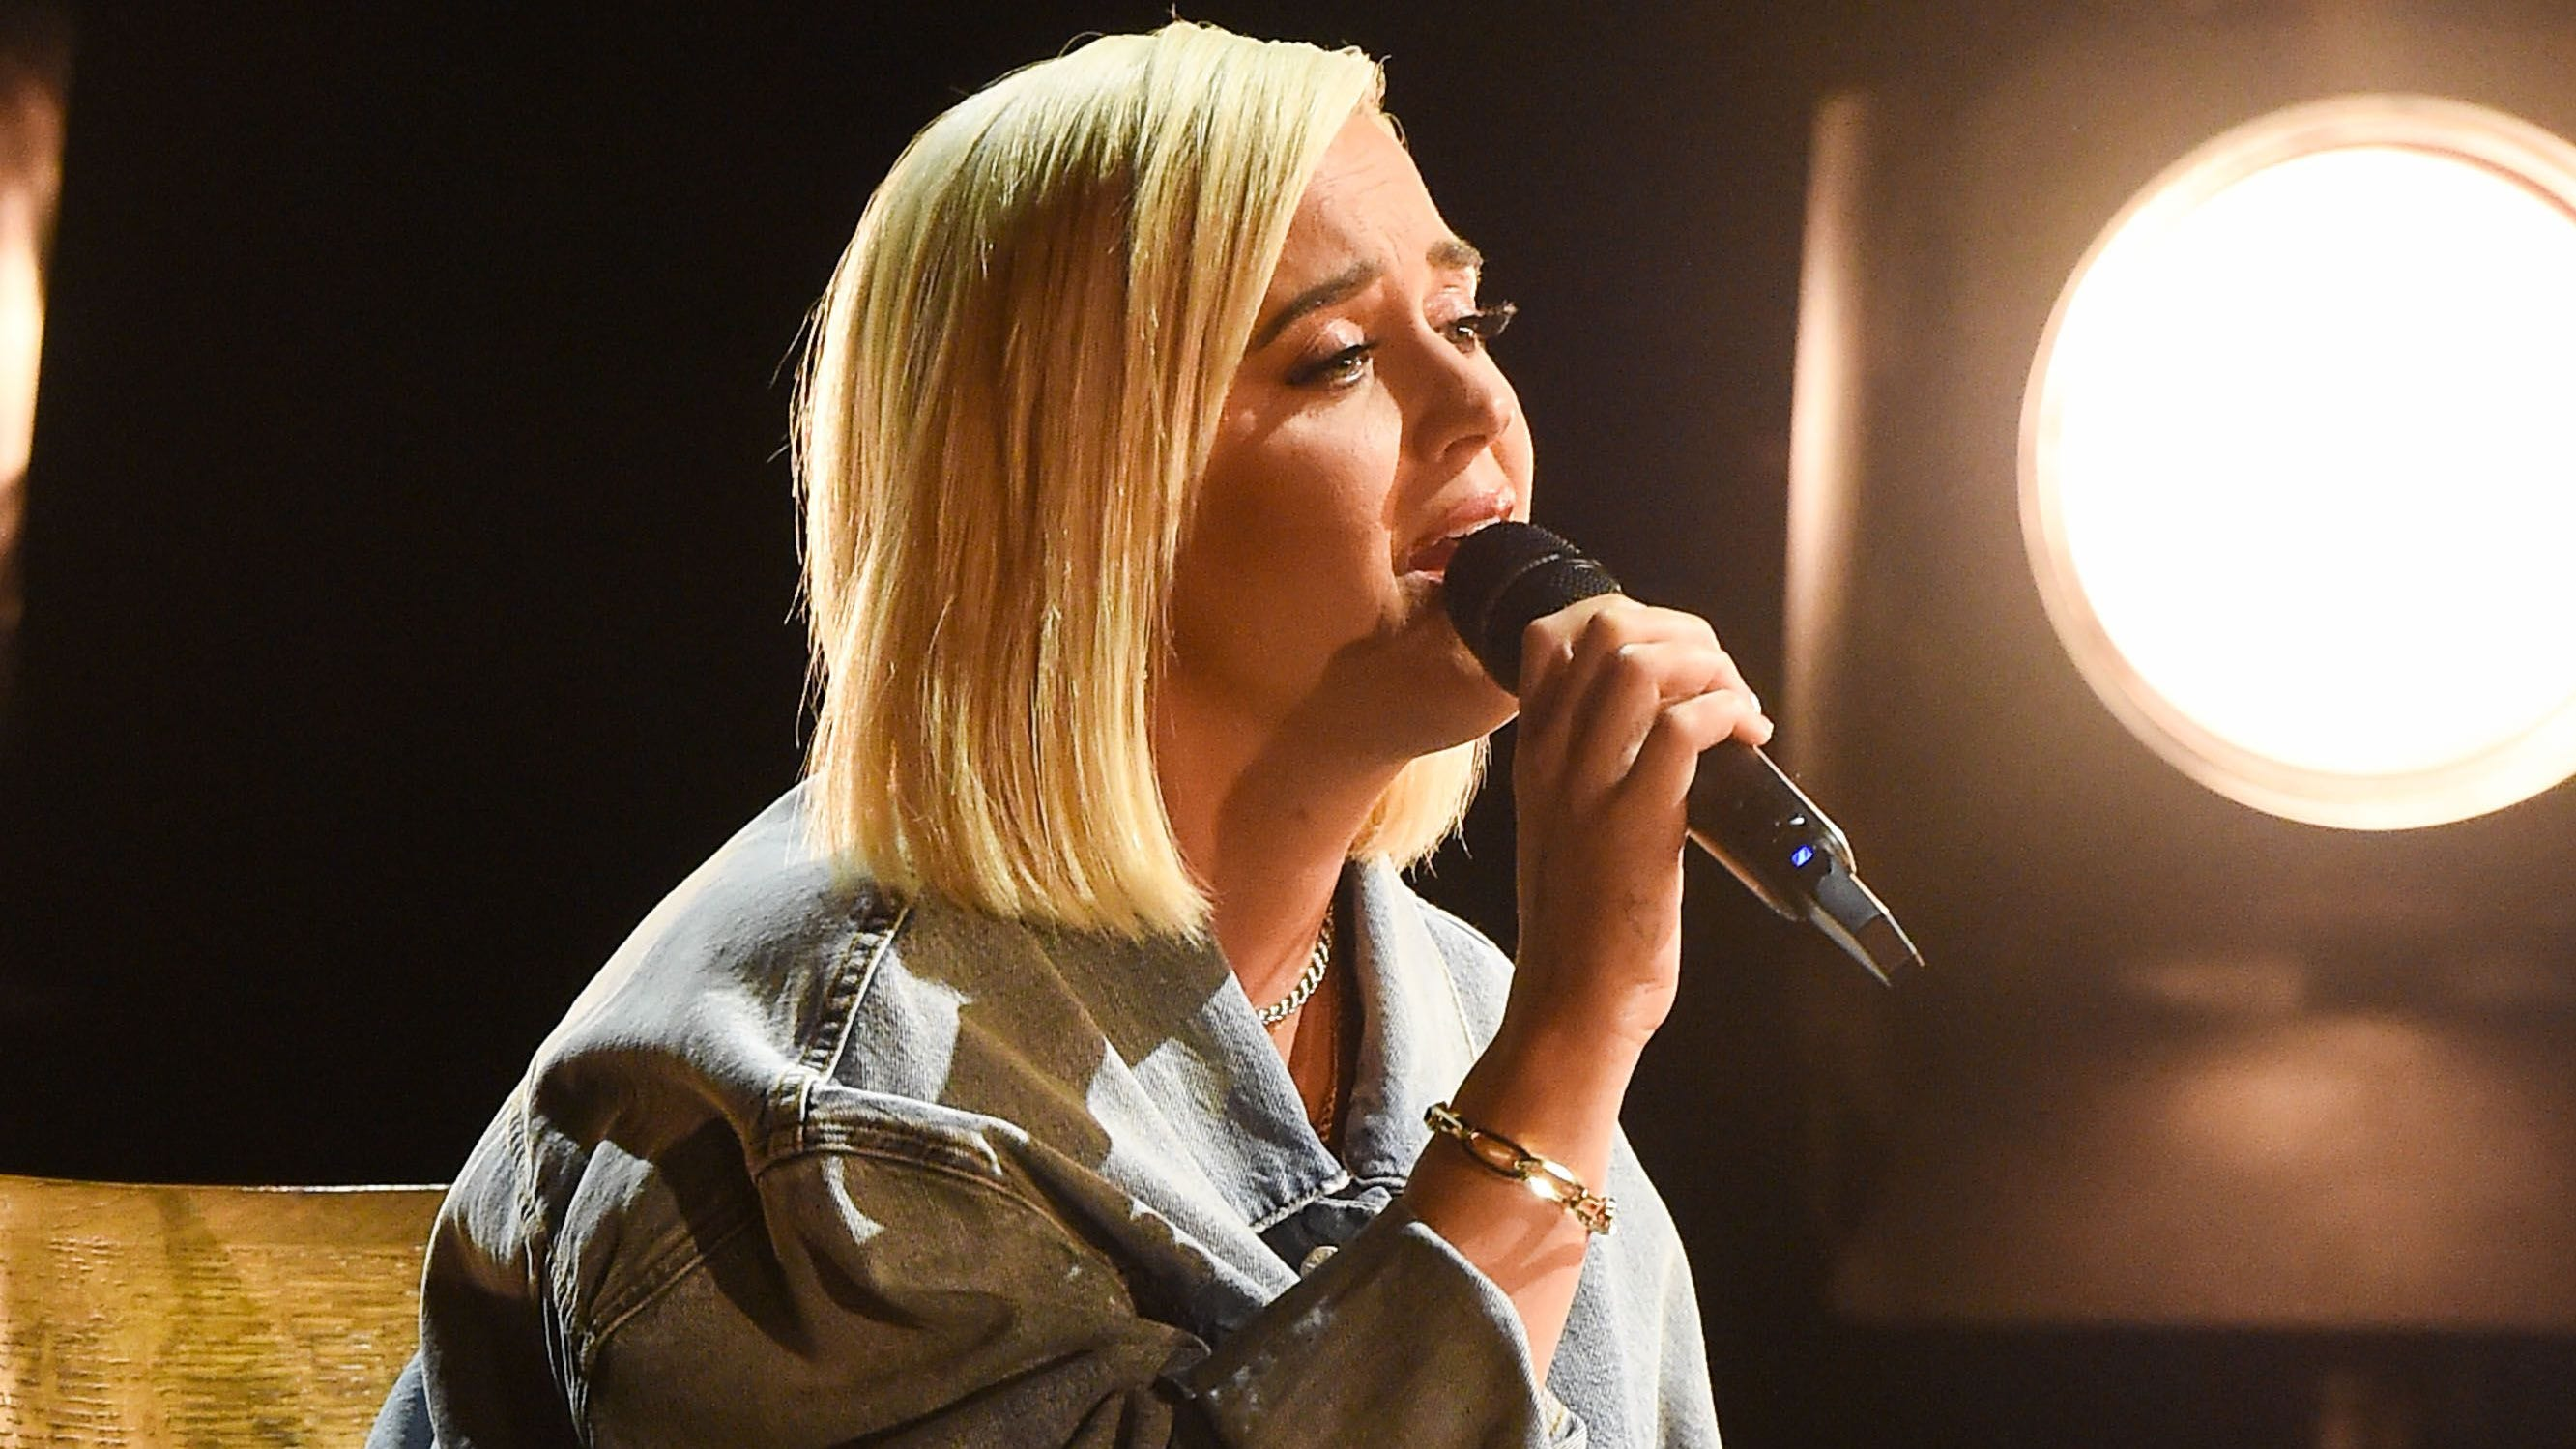 """Katy Perry performed her song """"Only Love"""" with the help of country singer Darius Rucker at Sunday's American Music Awards."""